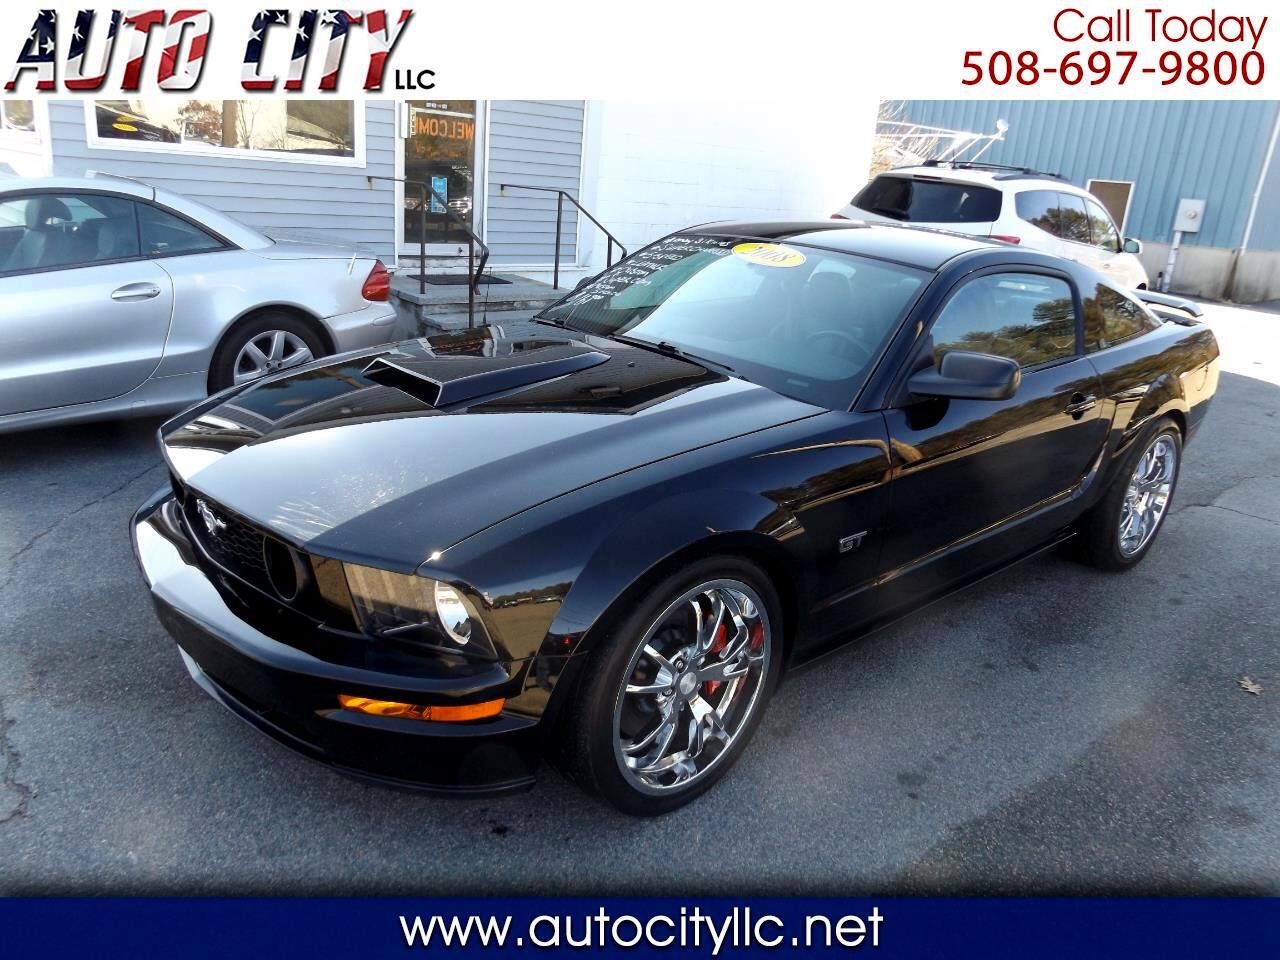 2008 Ford Mustang 2dr Cpe GT Premium